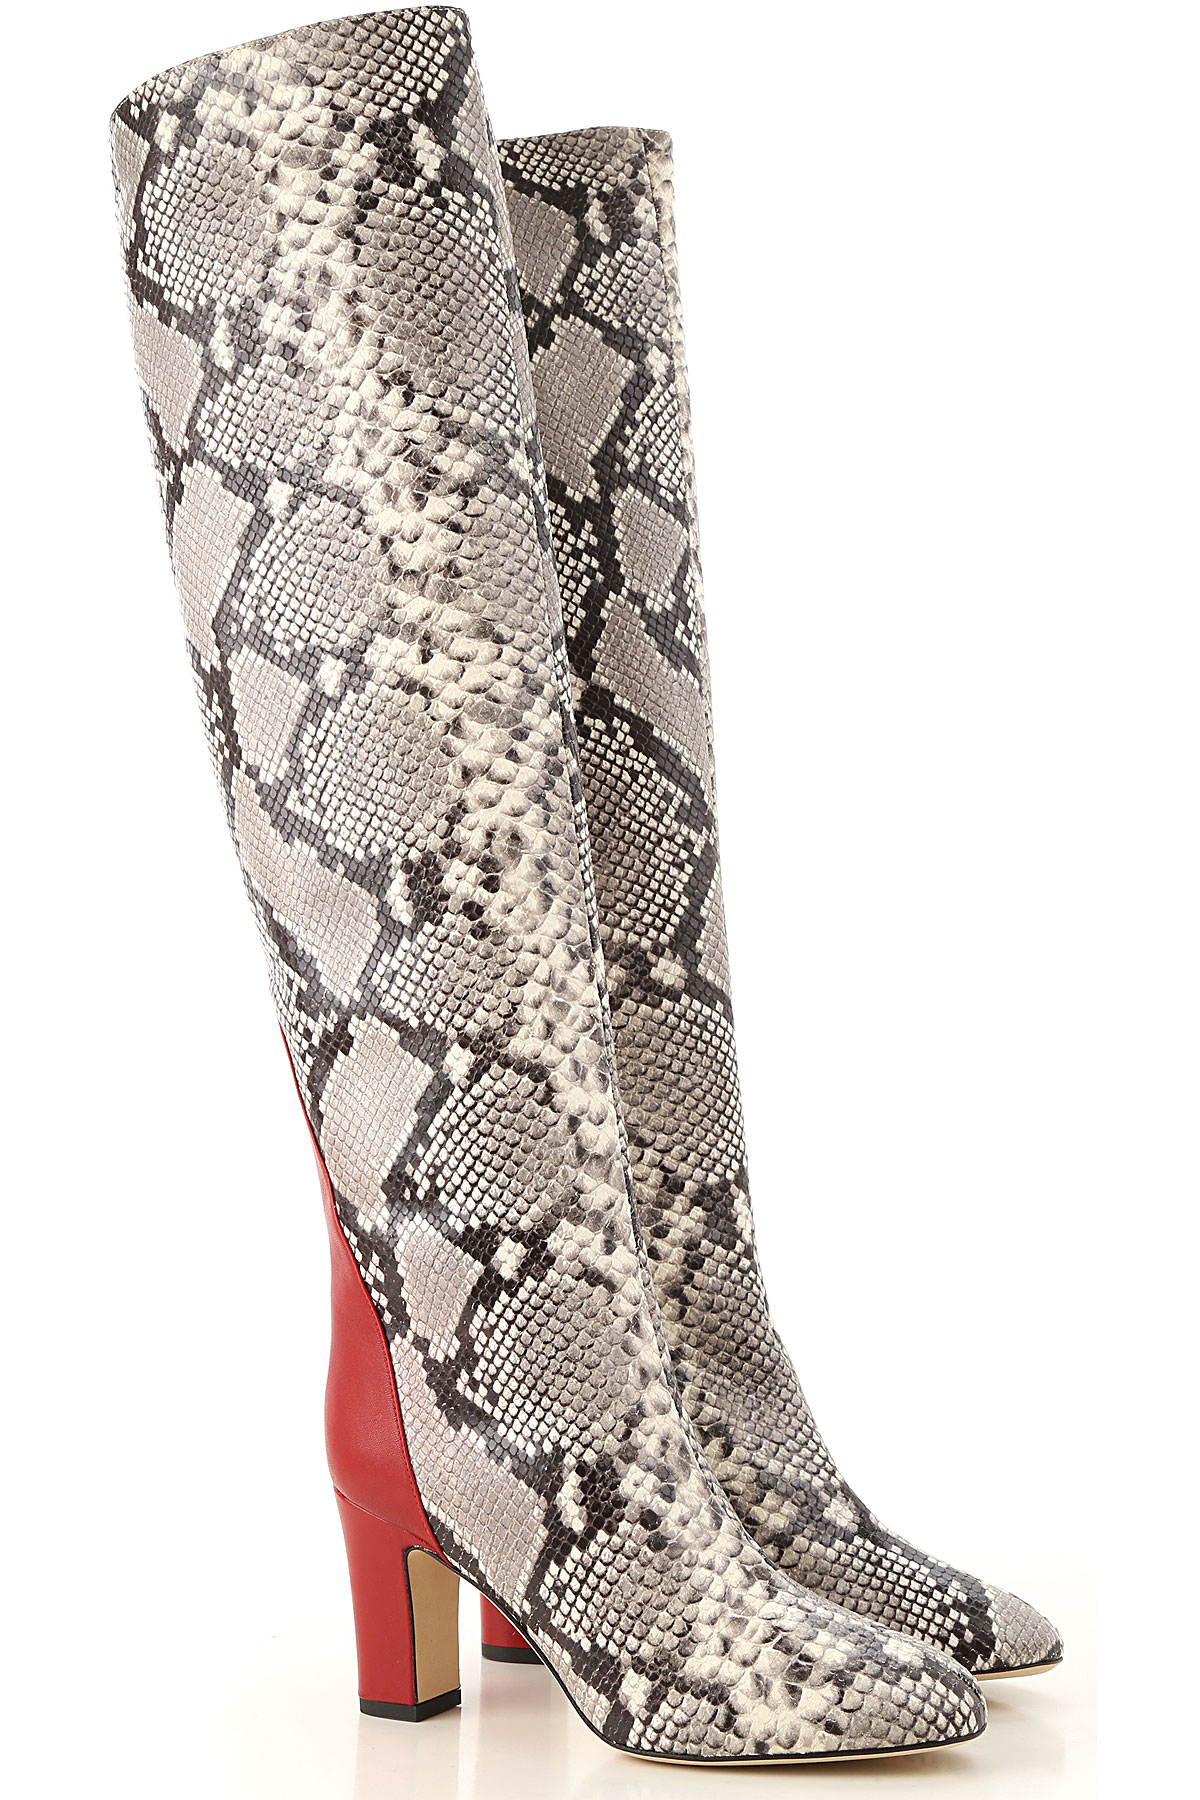 Image of Gia Couture Boots for Women, Booties, Python, Leather, 2017, 10 6 7 8 9